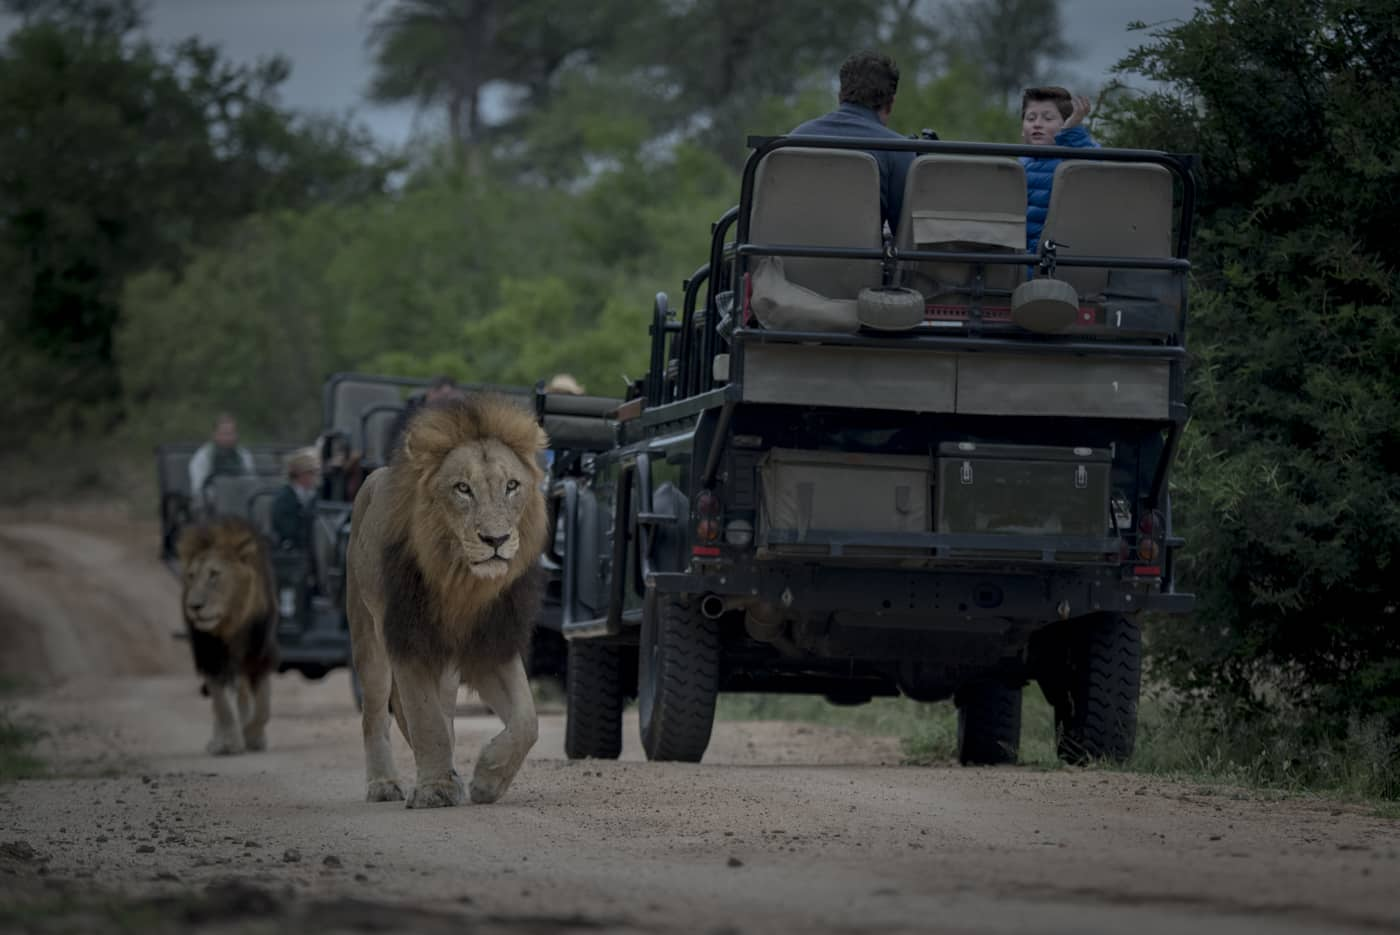 Lions on drive at Londolozi